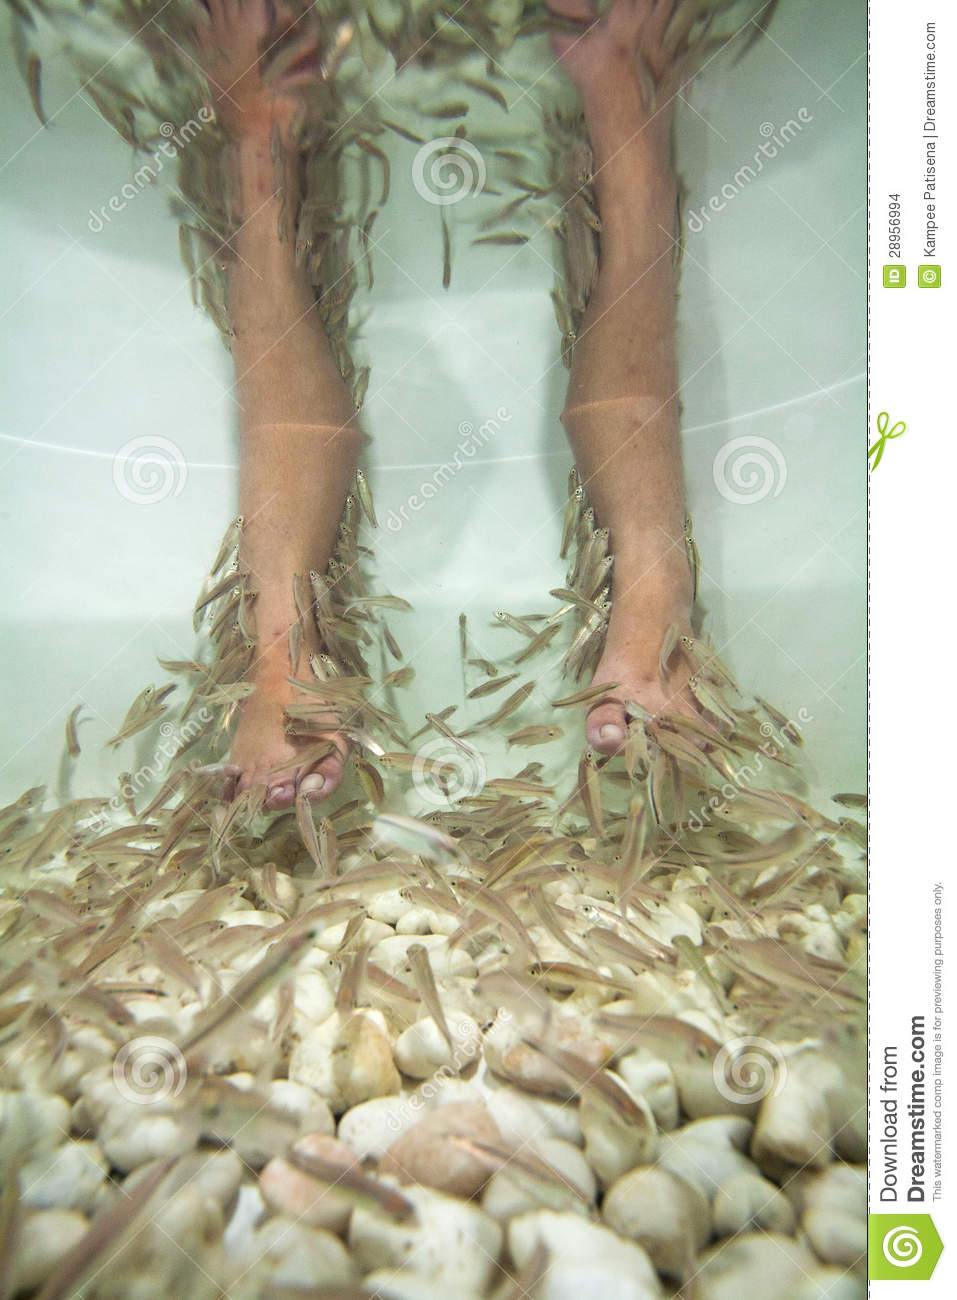 Fish spa pedicure treatment stock images image 28956994 for A salon called fish